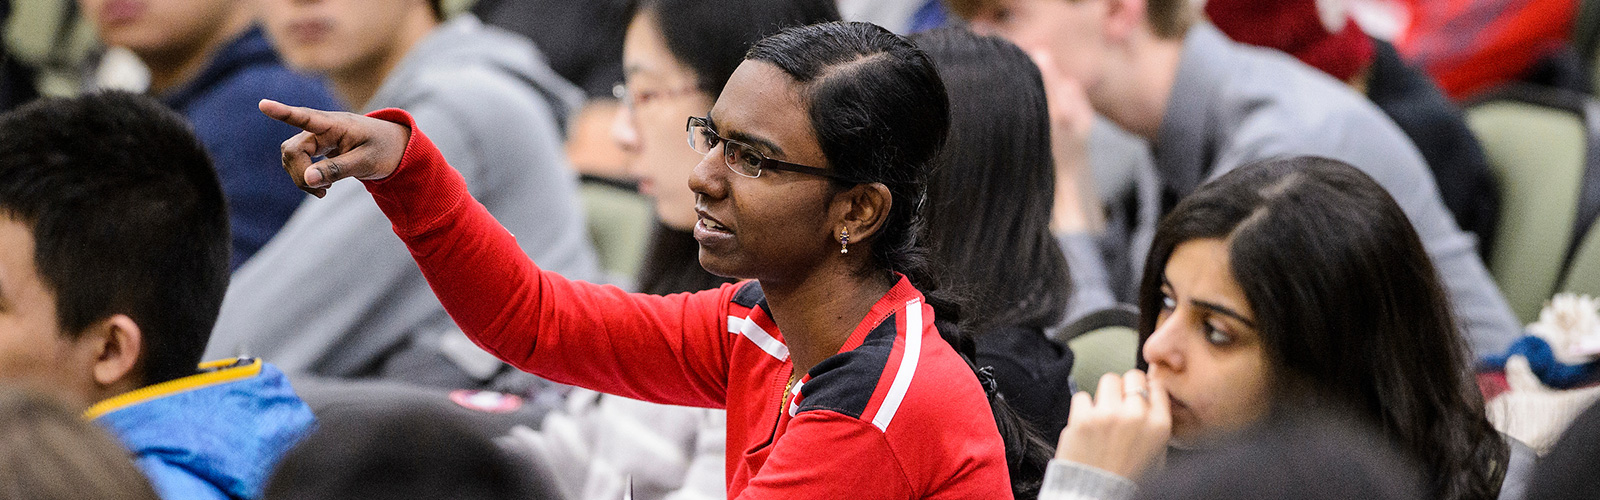 A student responds to a question during a Comp Sci 537 Intro to Operating Systems class at UW–Madison.